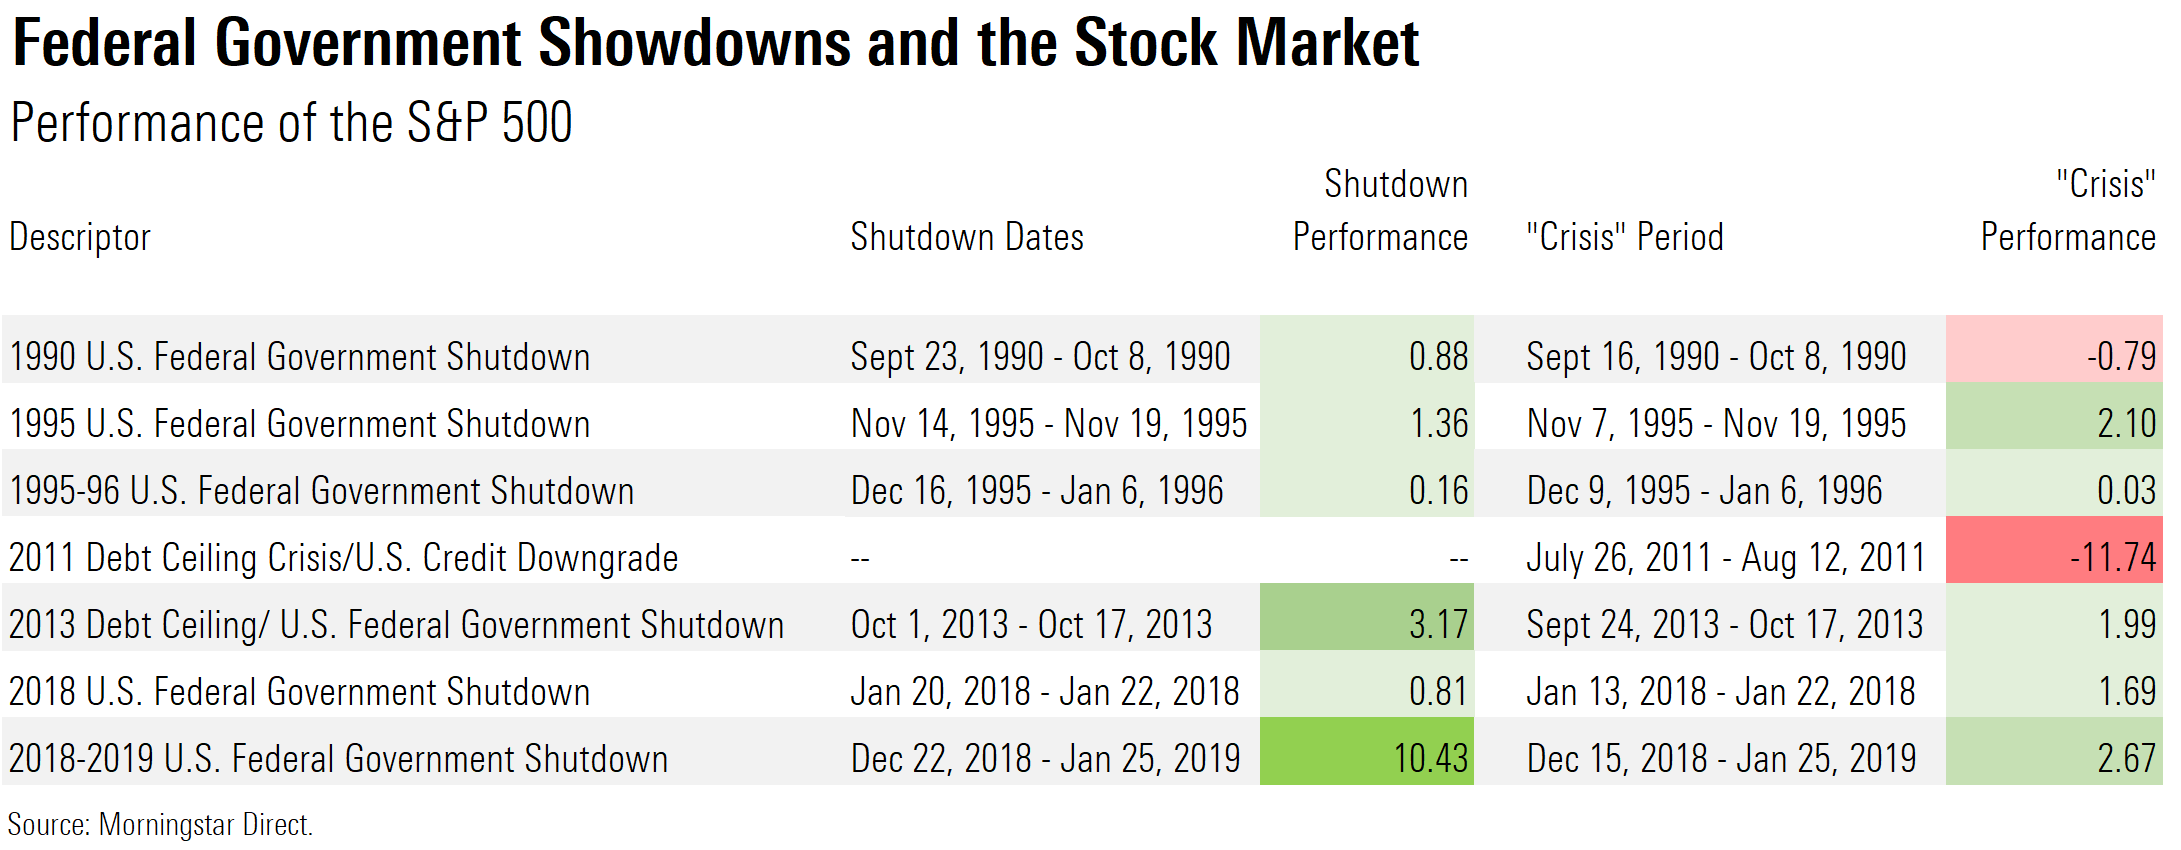 Federal government showdowns and the stock market